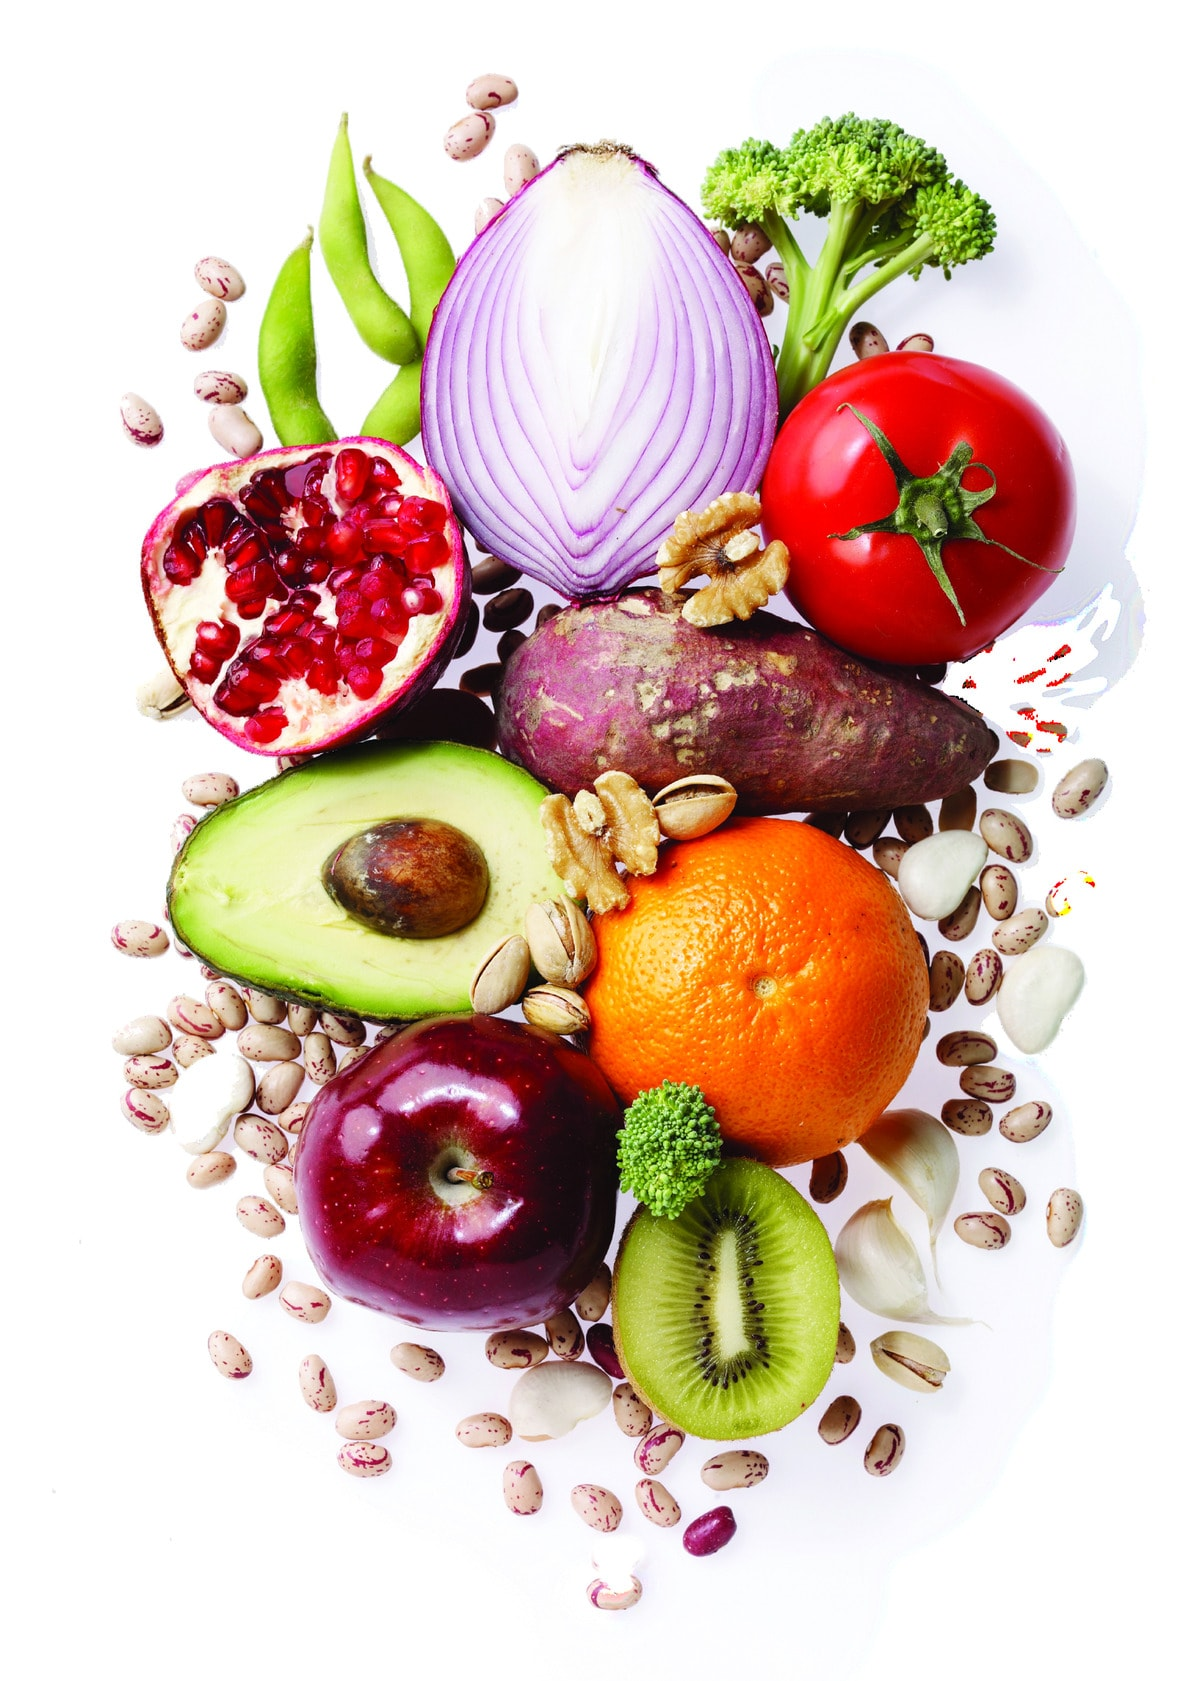 Food, Fodmaps And Ibs: What To Eat And What To Avoid  Healthy Food Guide